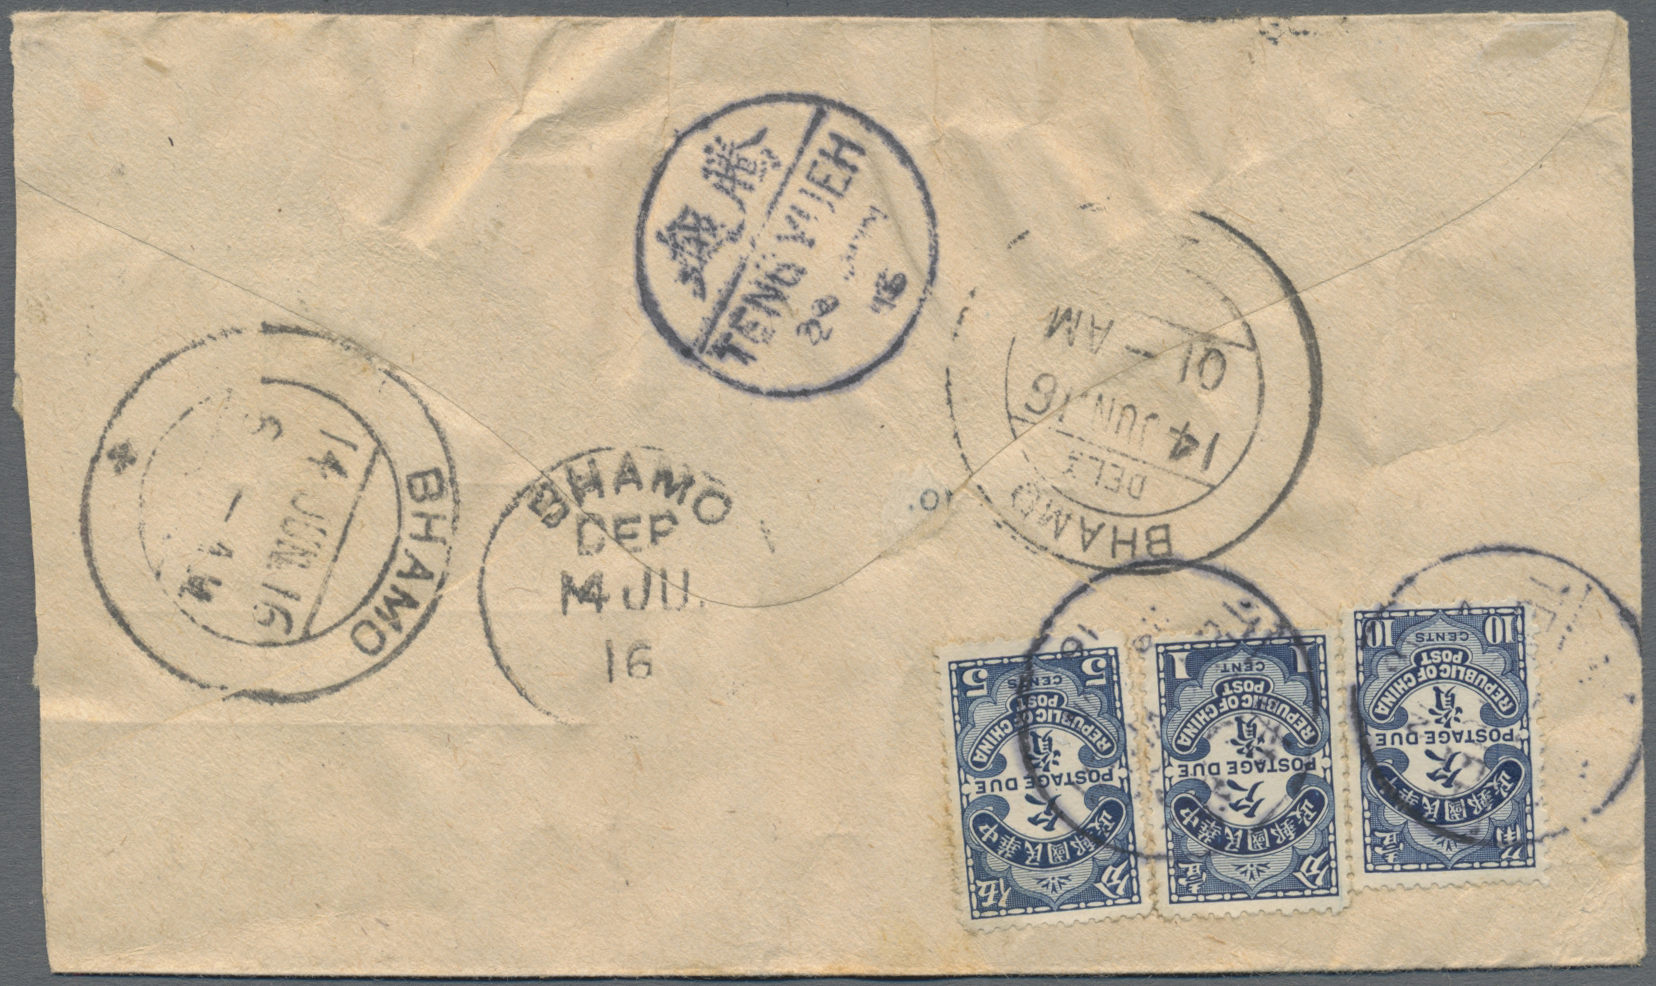 Able Bahrain 1942 3a6p Bright Blue Sg 46 Used *combined Shipping* British Colonies & Territories Bahrain (until 1971)